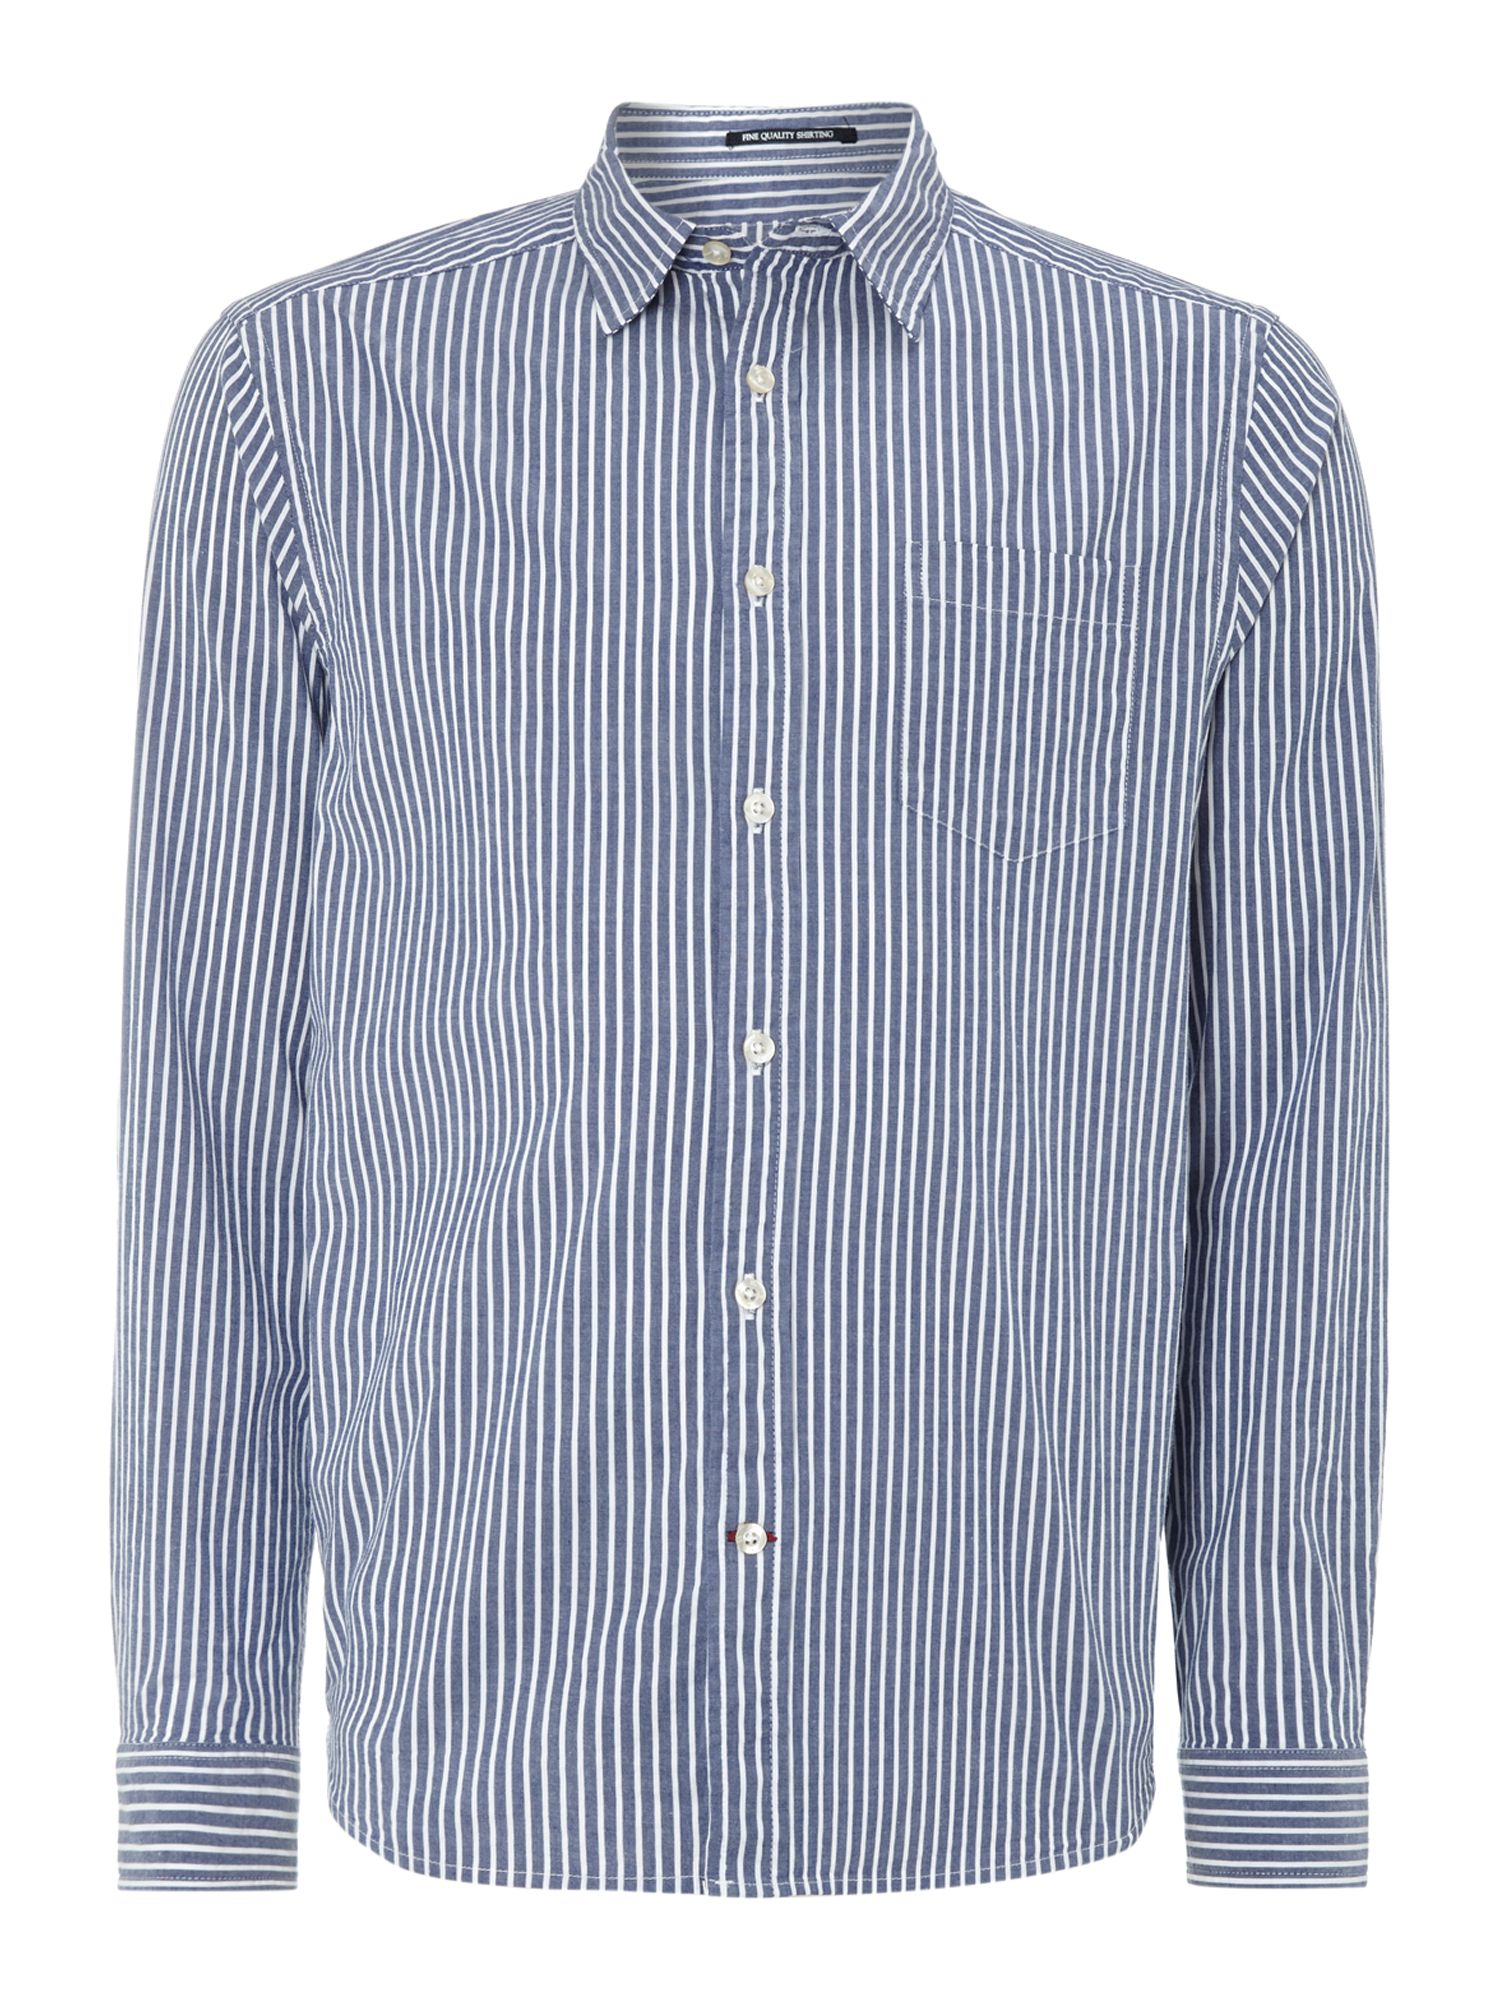 Brooklyn stripe shirt